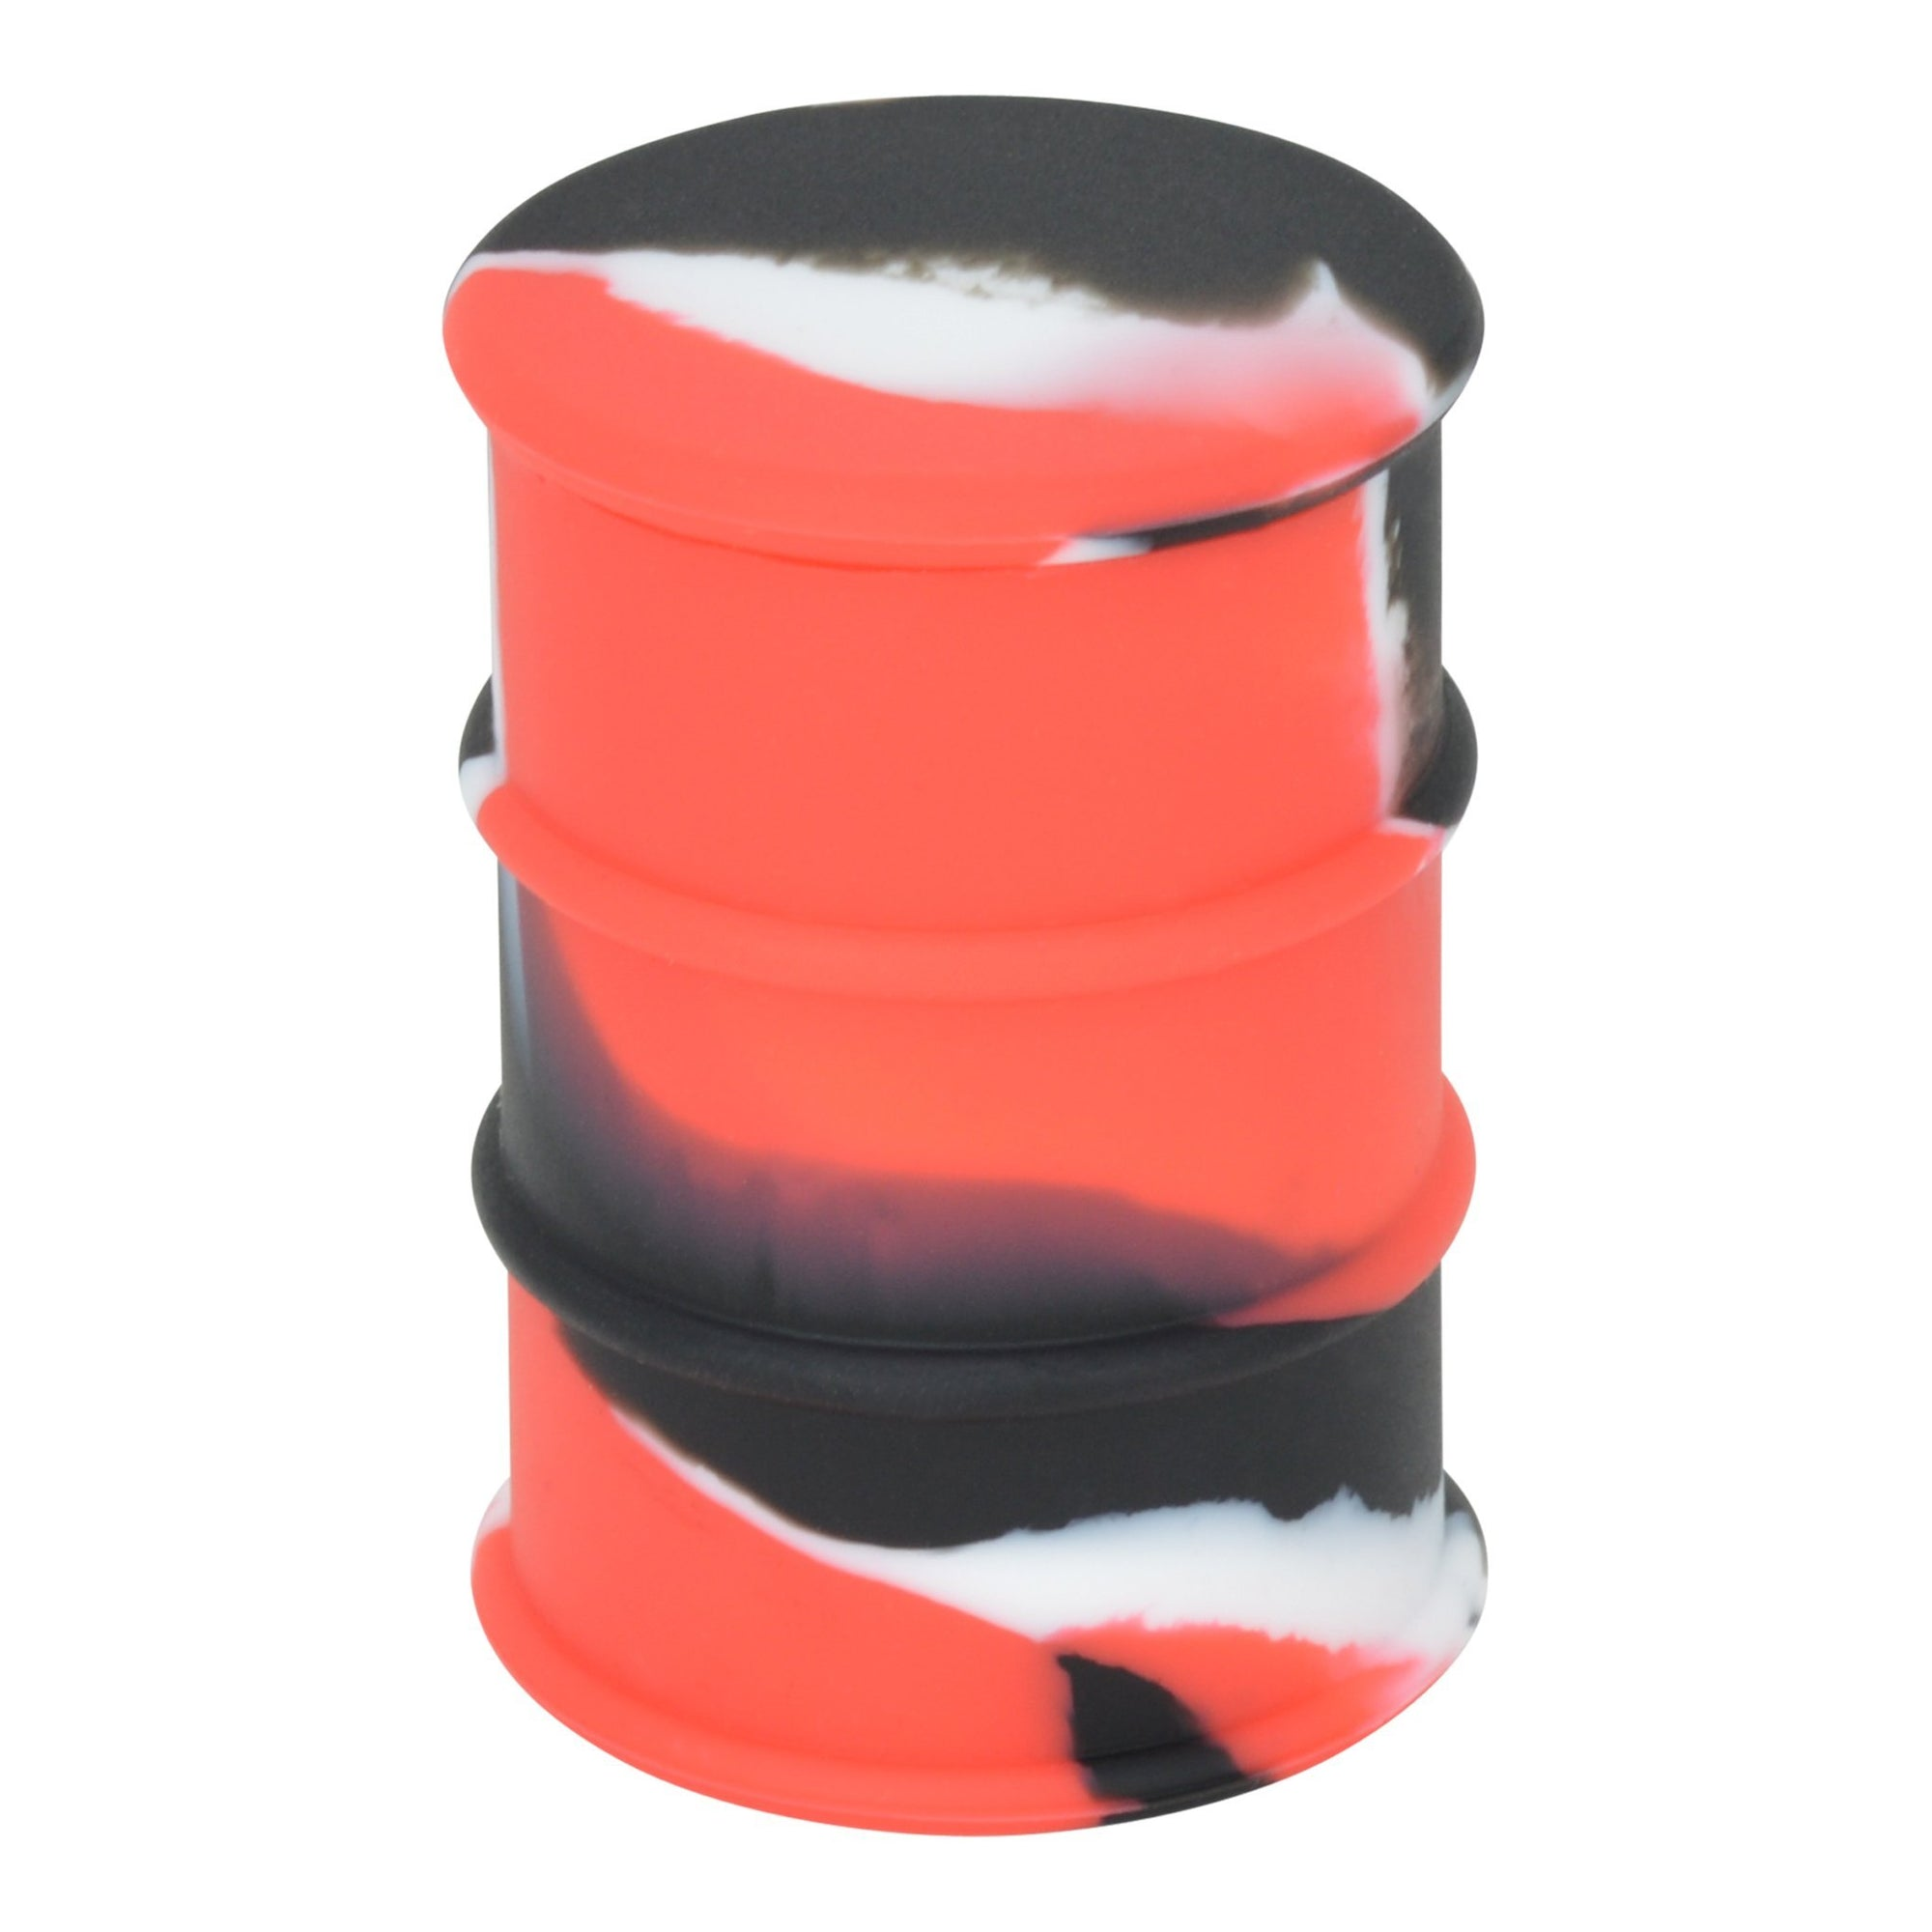 Pocket-friendly silicone wax container smoking accessory with classy swirling colors and drum container barrel look and shape